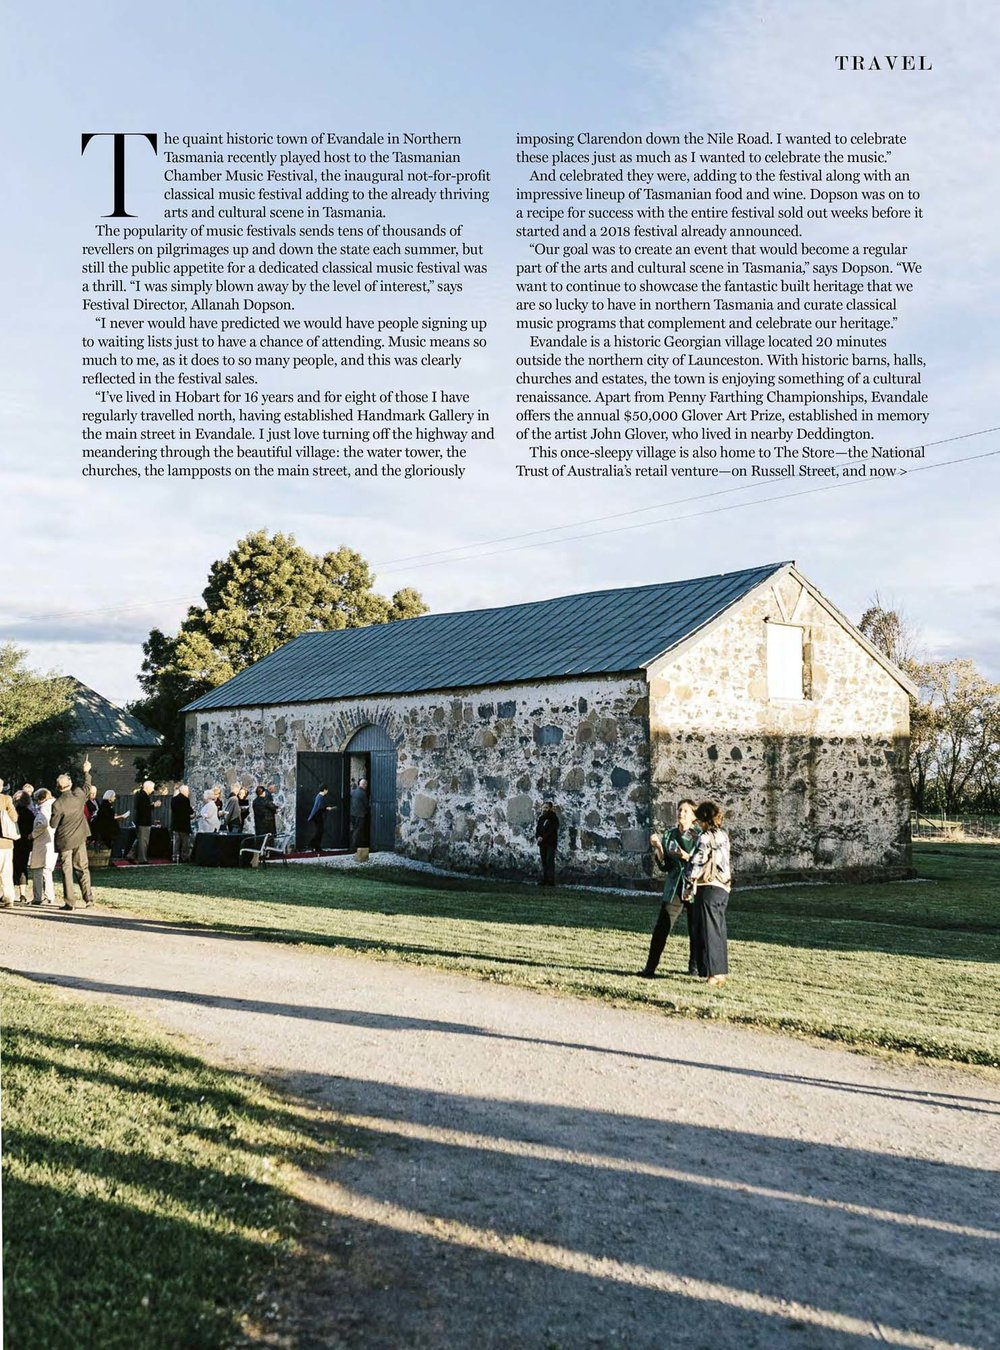 Marnie Hawson, Melbourne lifestyle photography, for Clarendon House, Tasmania and The National Trust